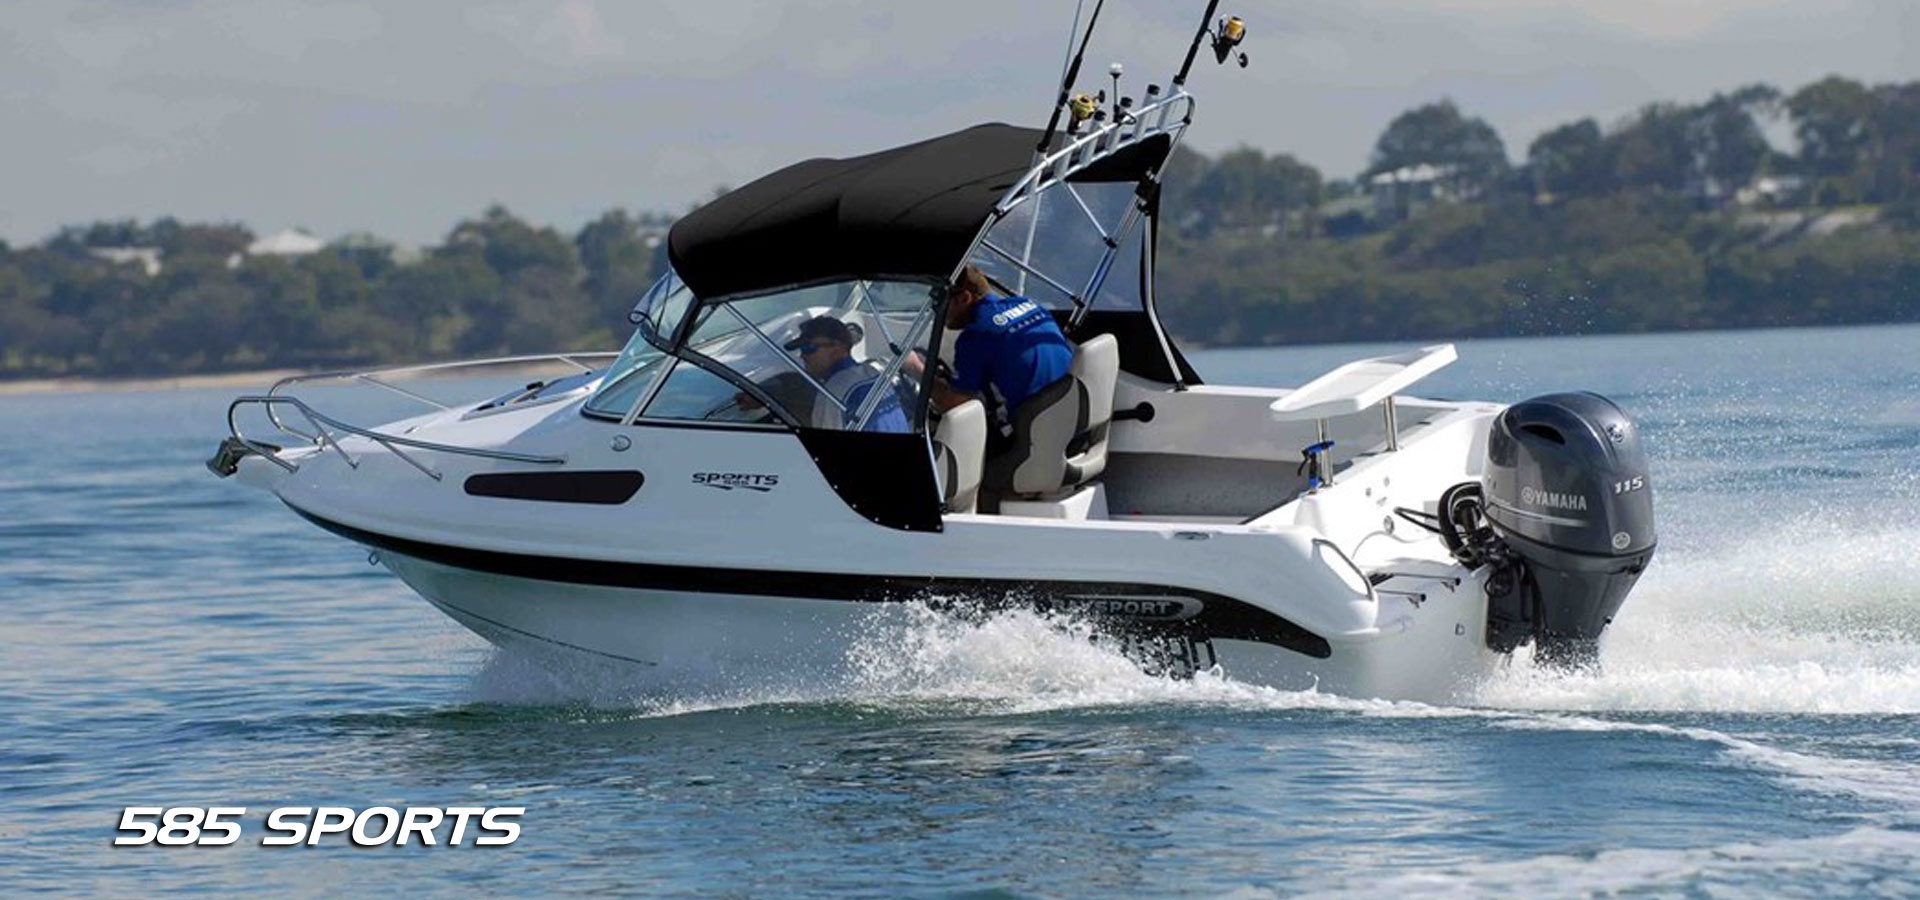 Baysport Boats 585 Sports fibreglass boats